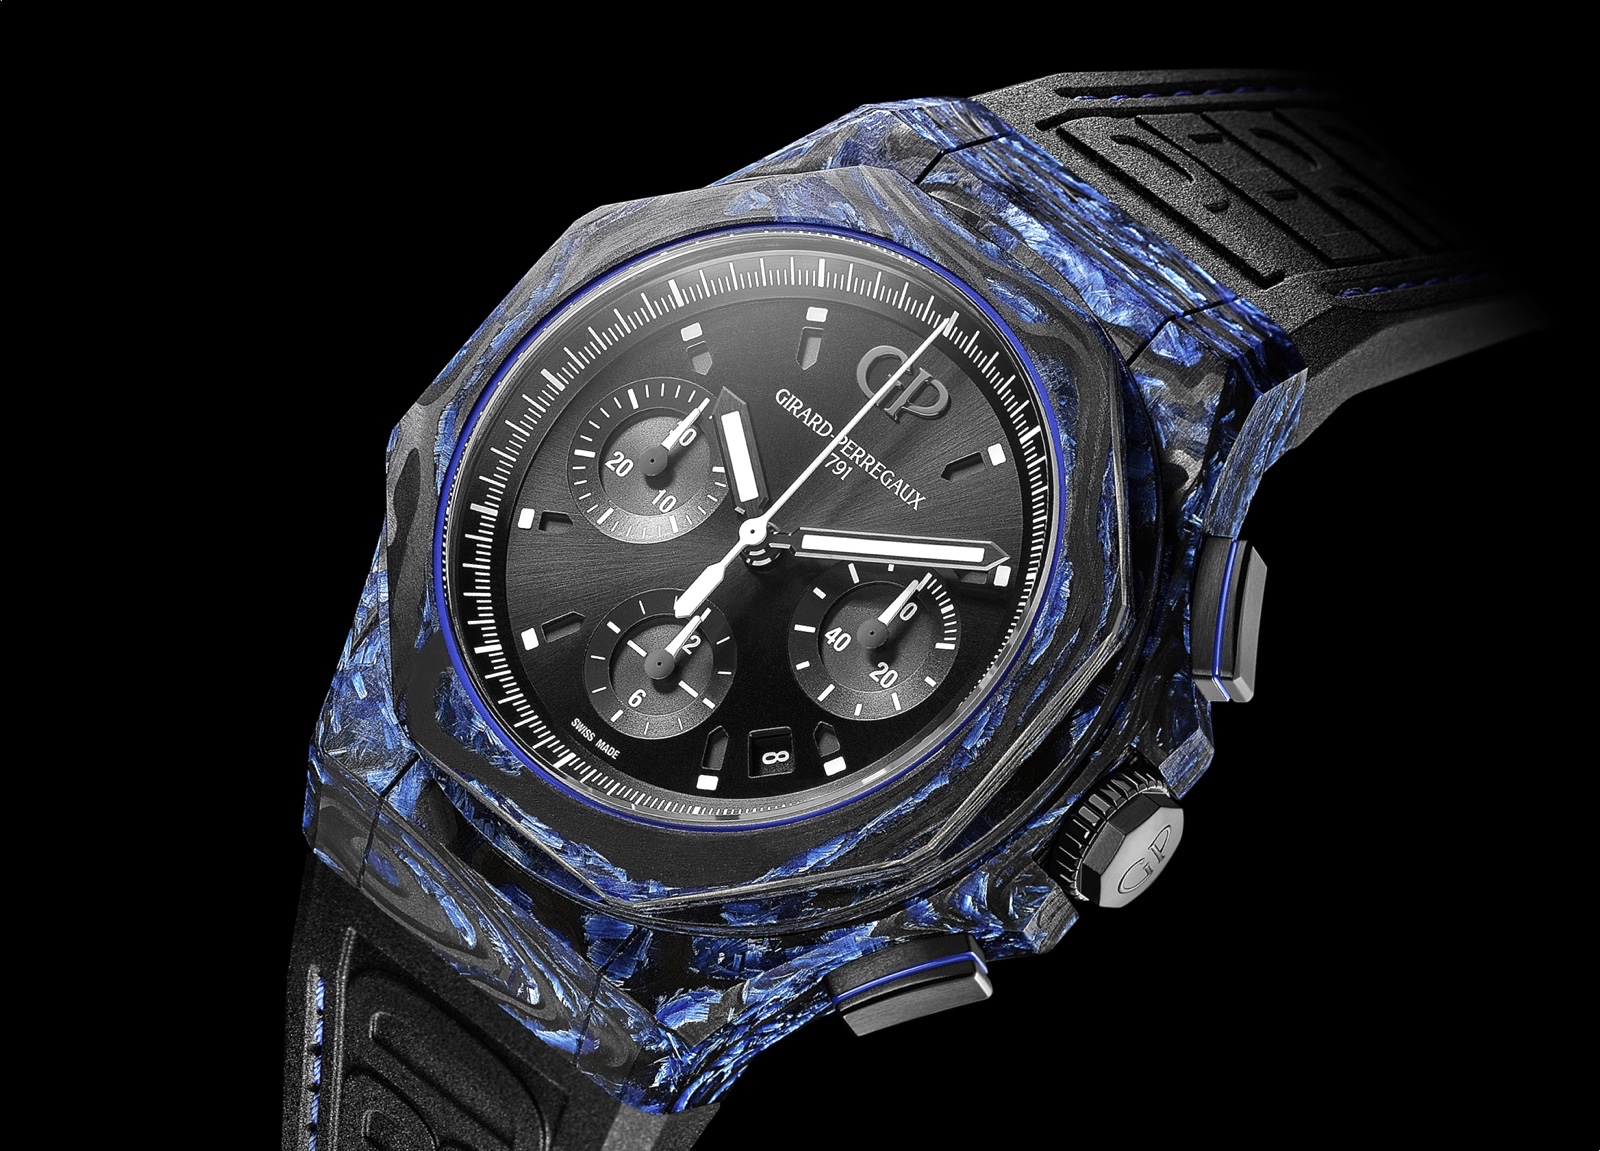 Girard-Perregaux SIHH 2019 Laureato Absolute Carbon Glass